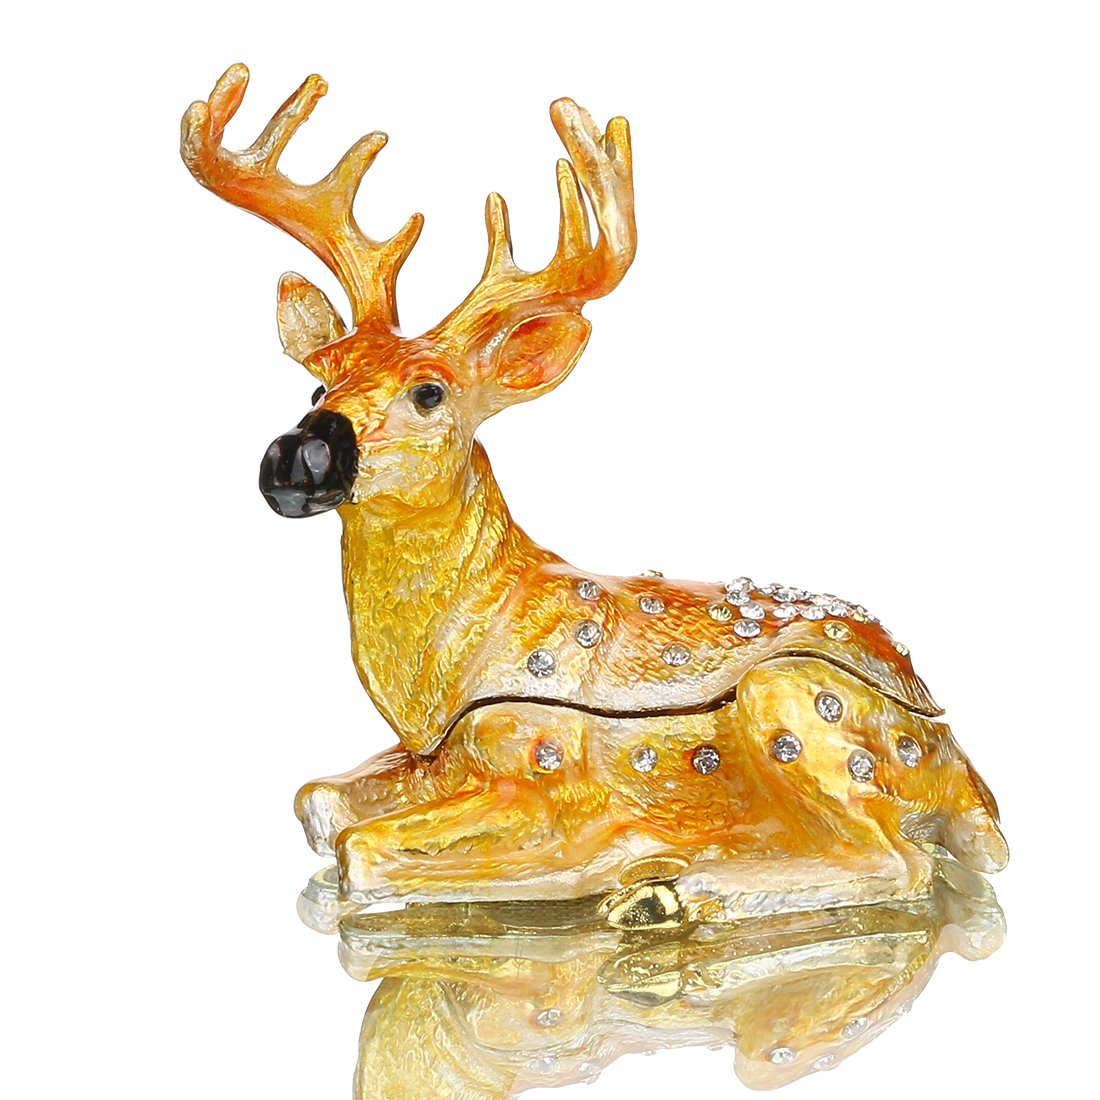 YUFENG Cute Deer Trinket Box Hinged for Girls Animal Figurine Collectible Wedding Ring Holder Favor Metal Table Centerpiece by YUFENG (Image #1)